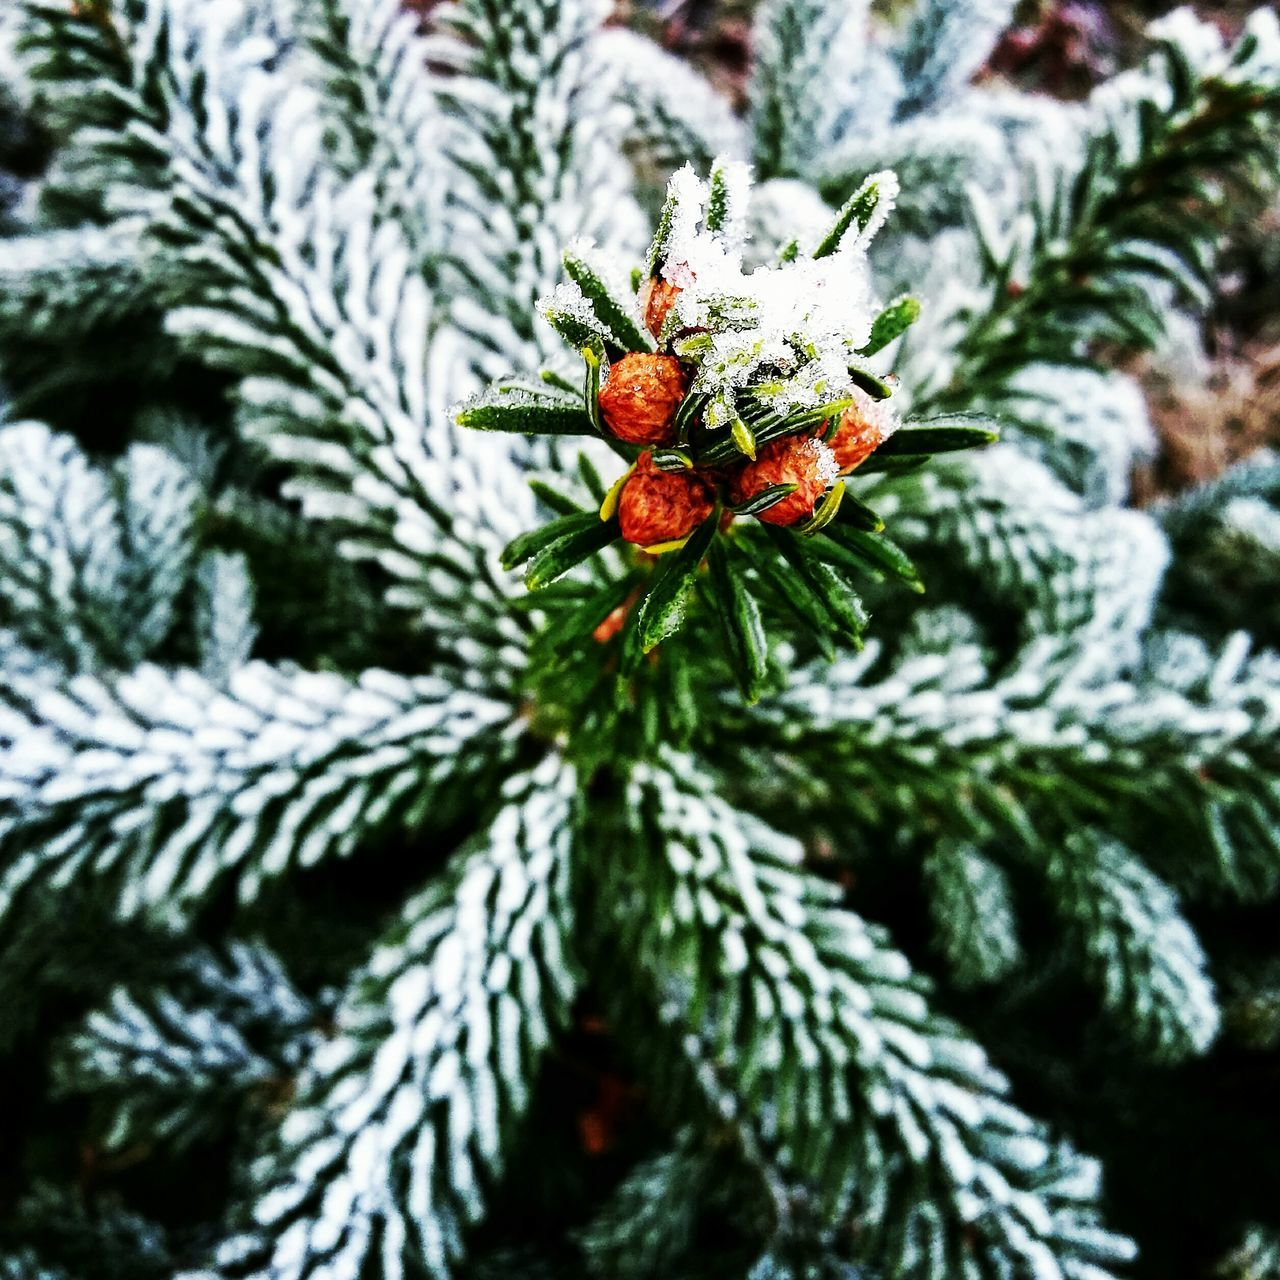 Hunting the small beautiful things in life 🌲❄ Tree Close-up Nature Needle - Plant Part Outdoors Details Details Of Nature Smallthingsthatmakemehappy No People Norway🇳🇴 Wintertime Winter Trees Christmas Tree Smallthingsinlife Lifeontheroad Life In Motion Green Color